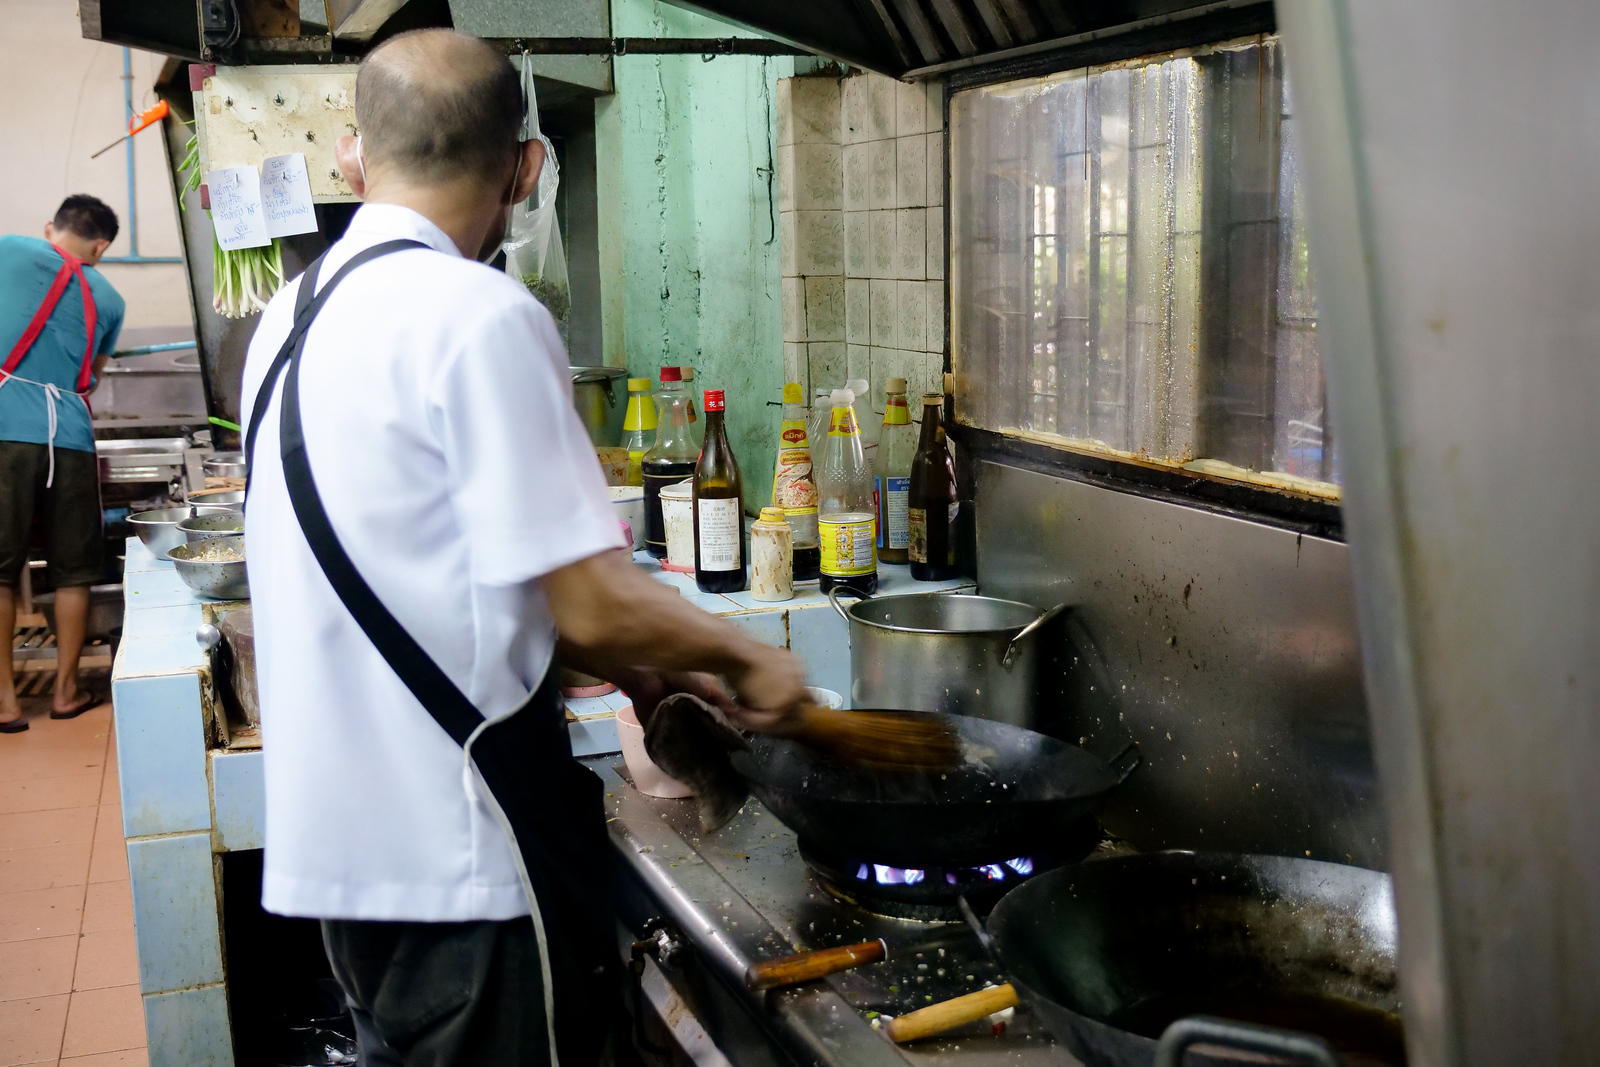 The wok-master at Lerd Rote, bathing in a pillar of steam